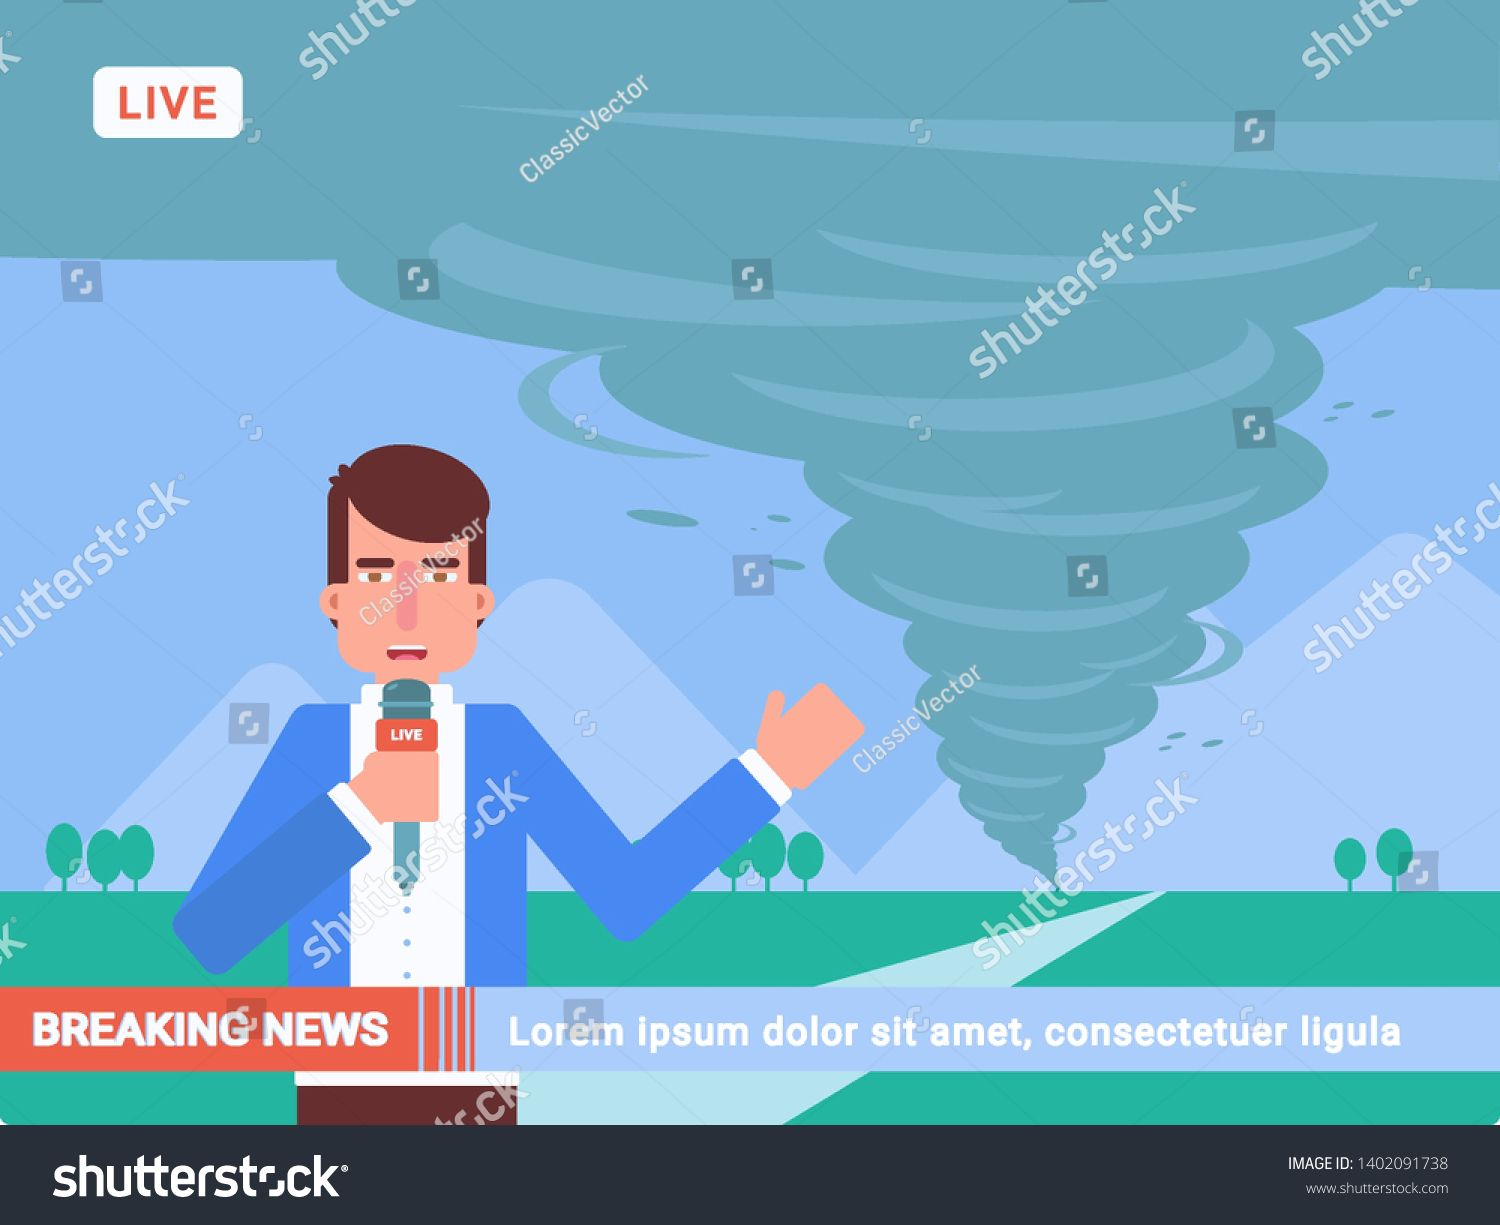 Breaking News Flat Vector Illustration Storm Hurricane Whirlwind Tornado Danger Reportage Journalist With Mic In 2020 Graphic Poster Art Camera Cartoon Poster Art